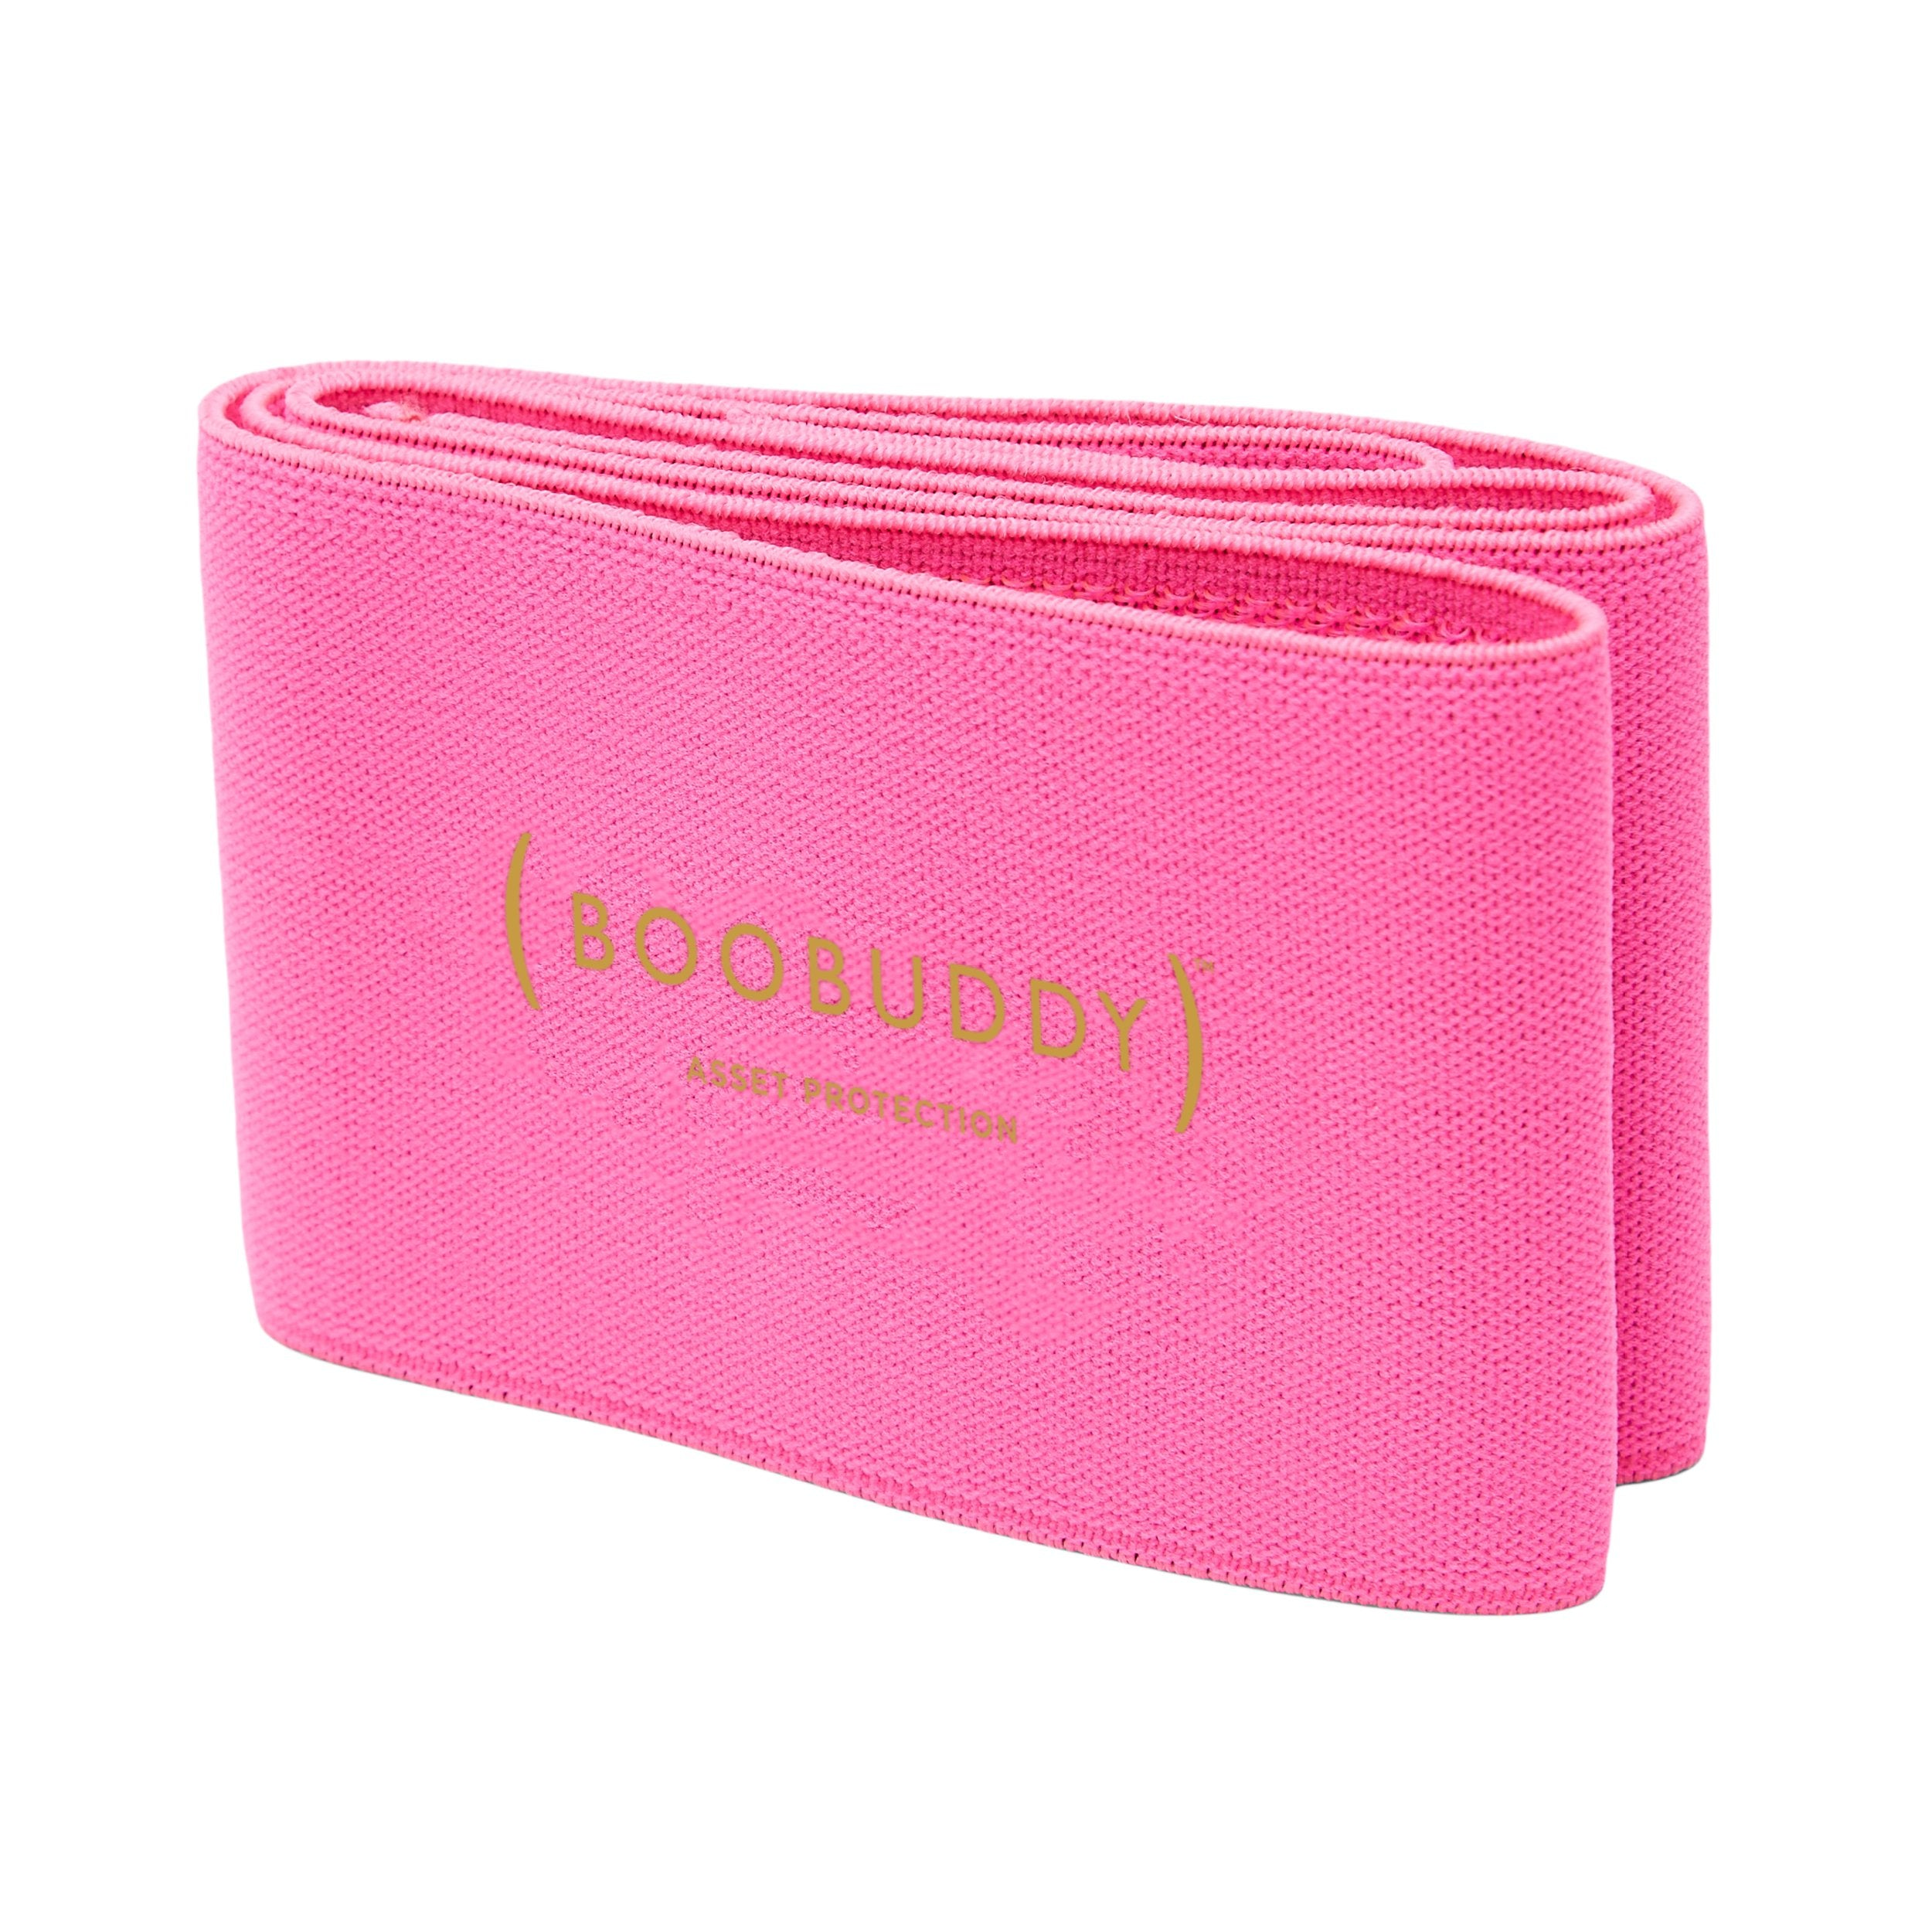 Boobuddy Adjustable Breast Support Band | Pink